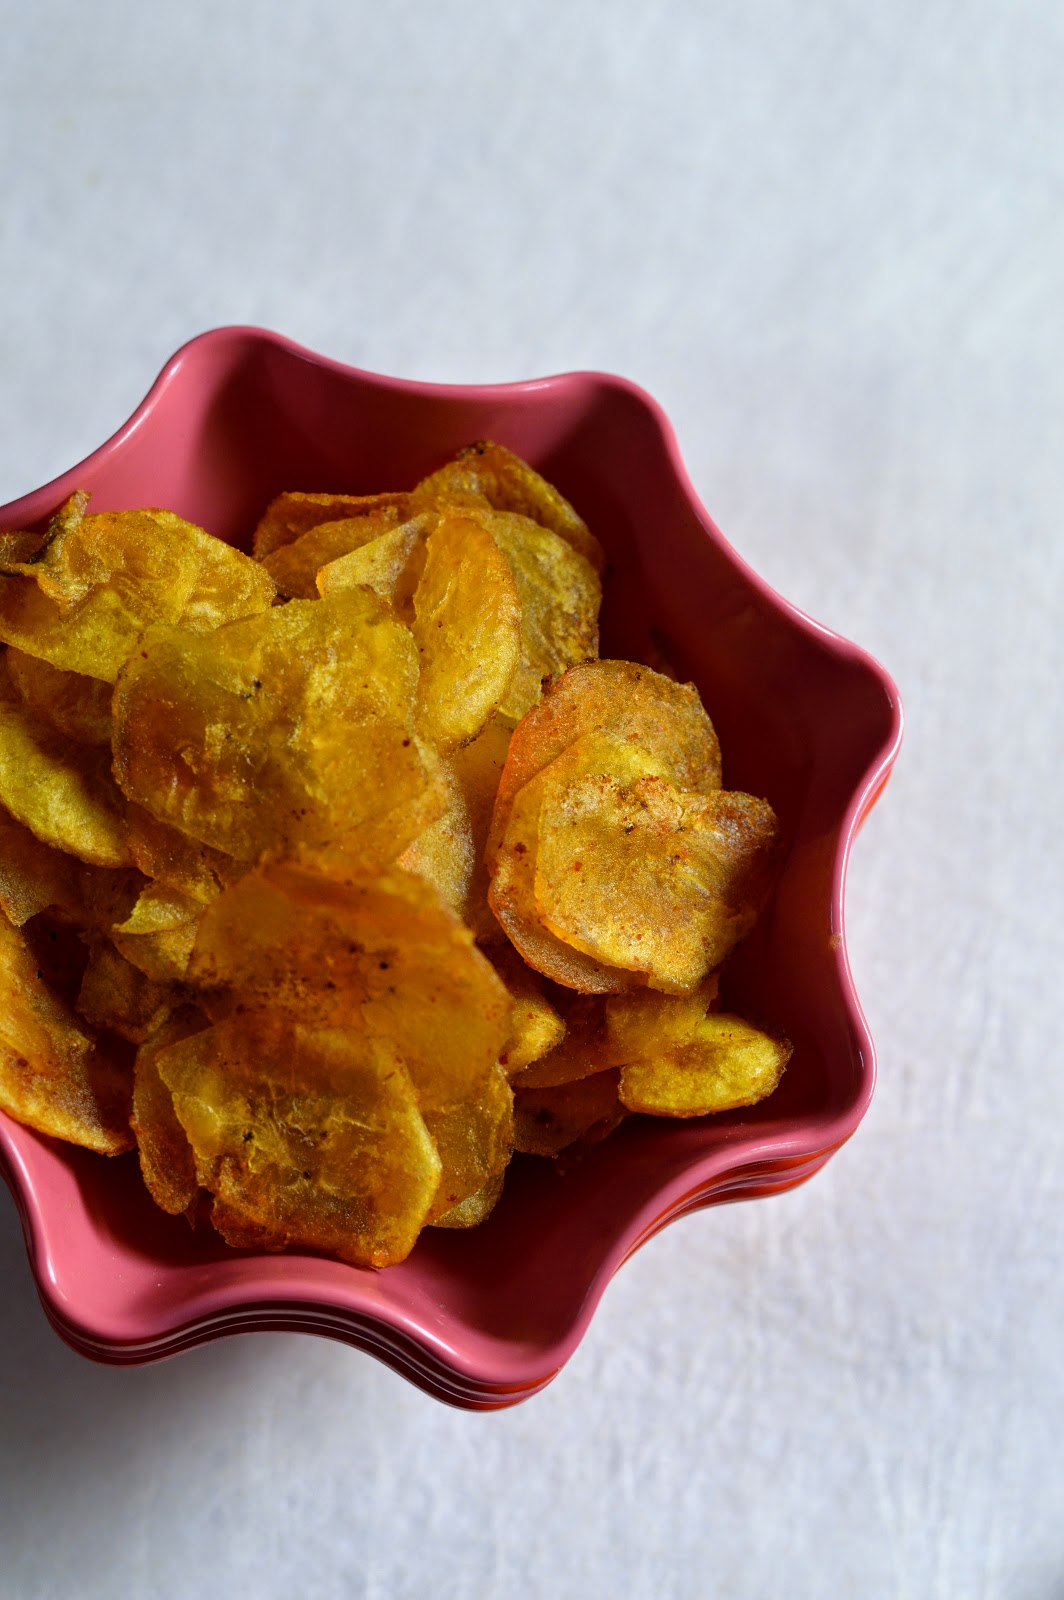 kerala nendran chips recipe step wise pictures, banana chips easy recipe at home, nendram pazham chips at home